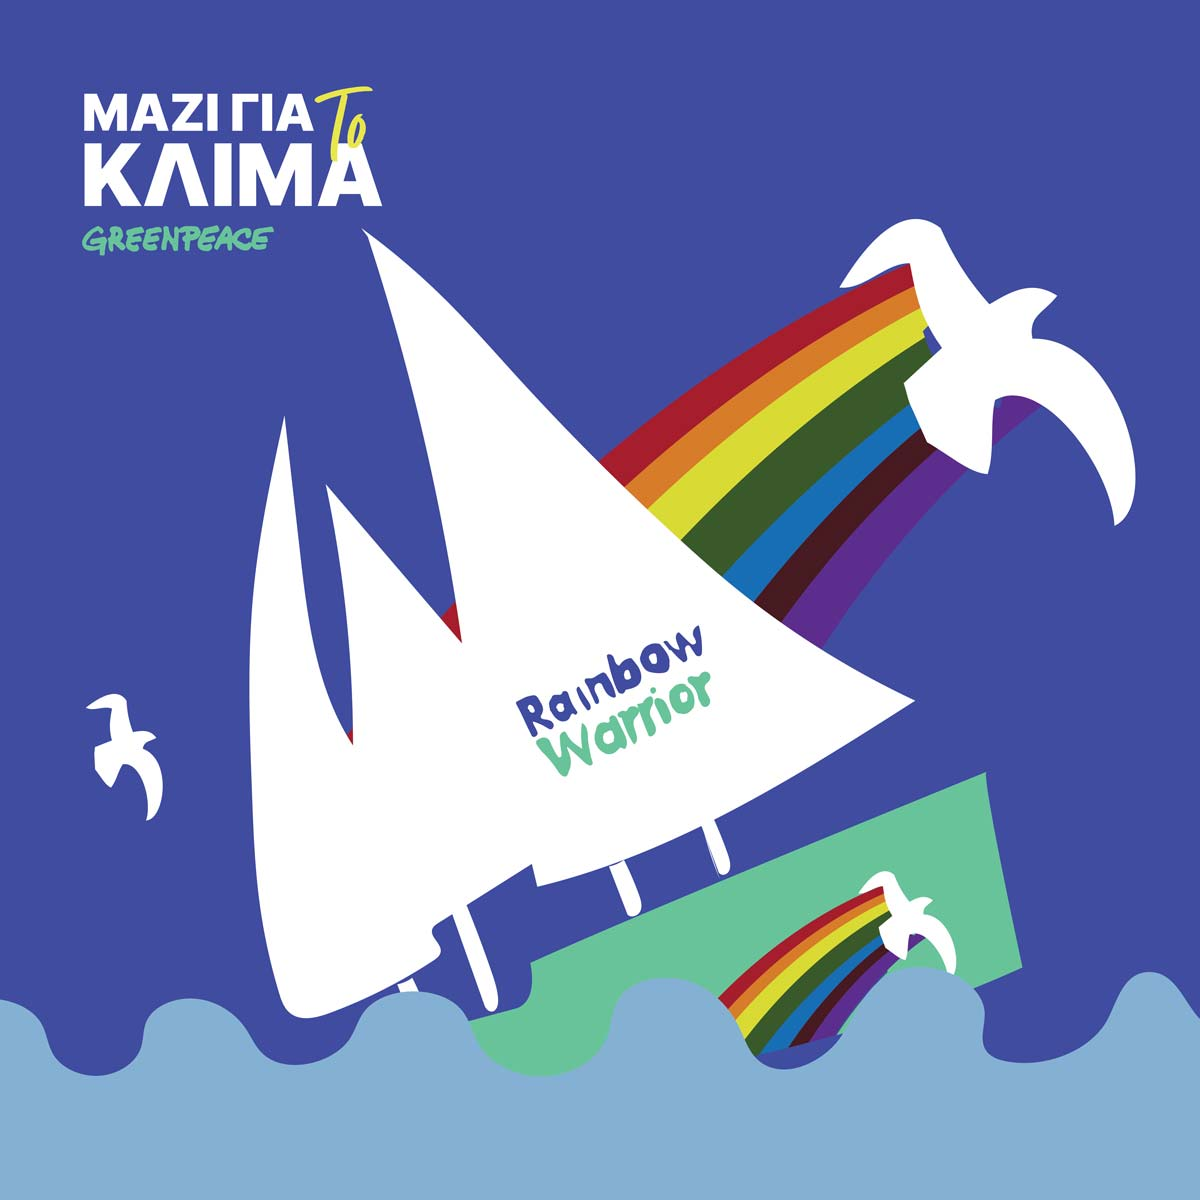 mazi-gia-to-klima-greenpeace